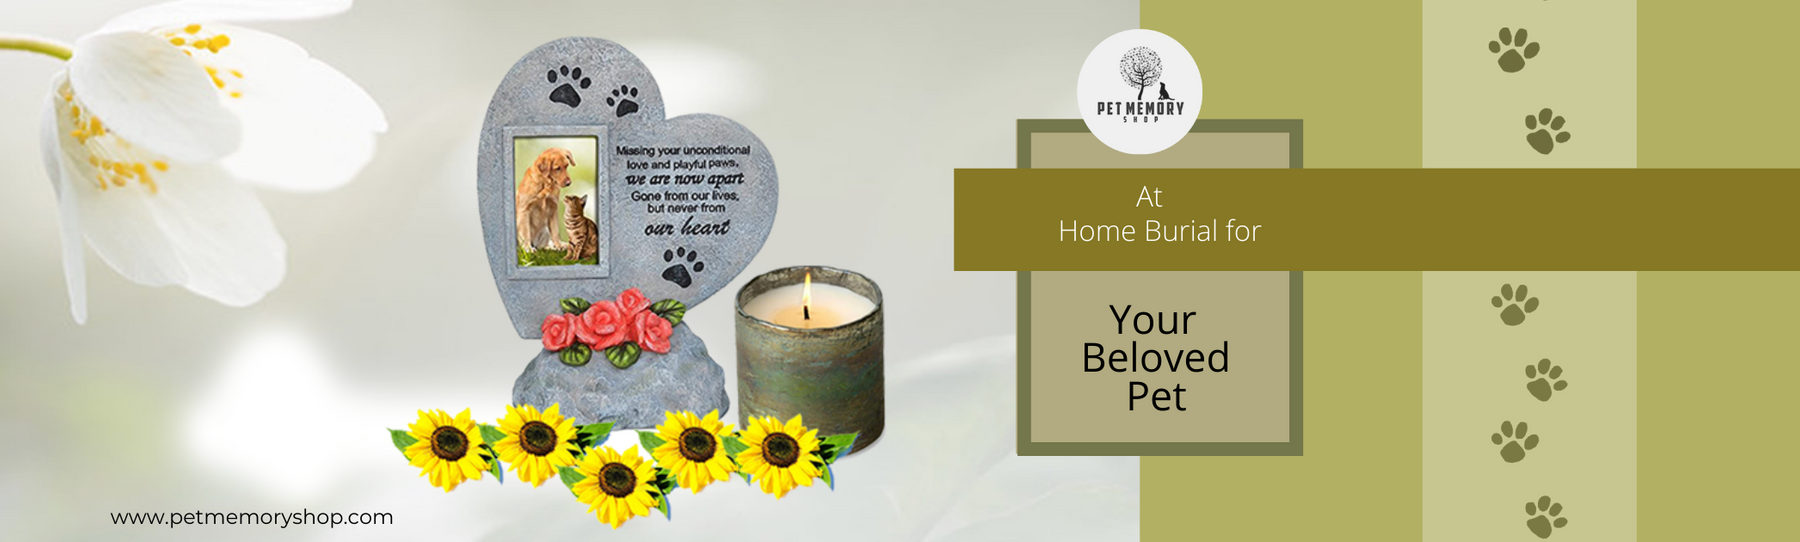 At Home Burial for Your Beloved Pet